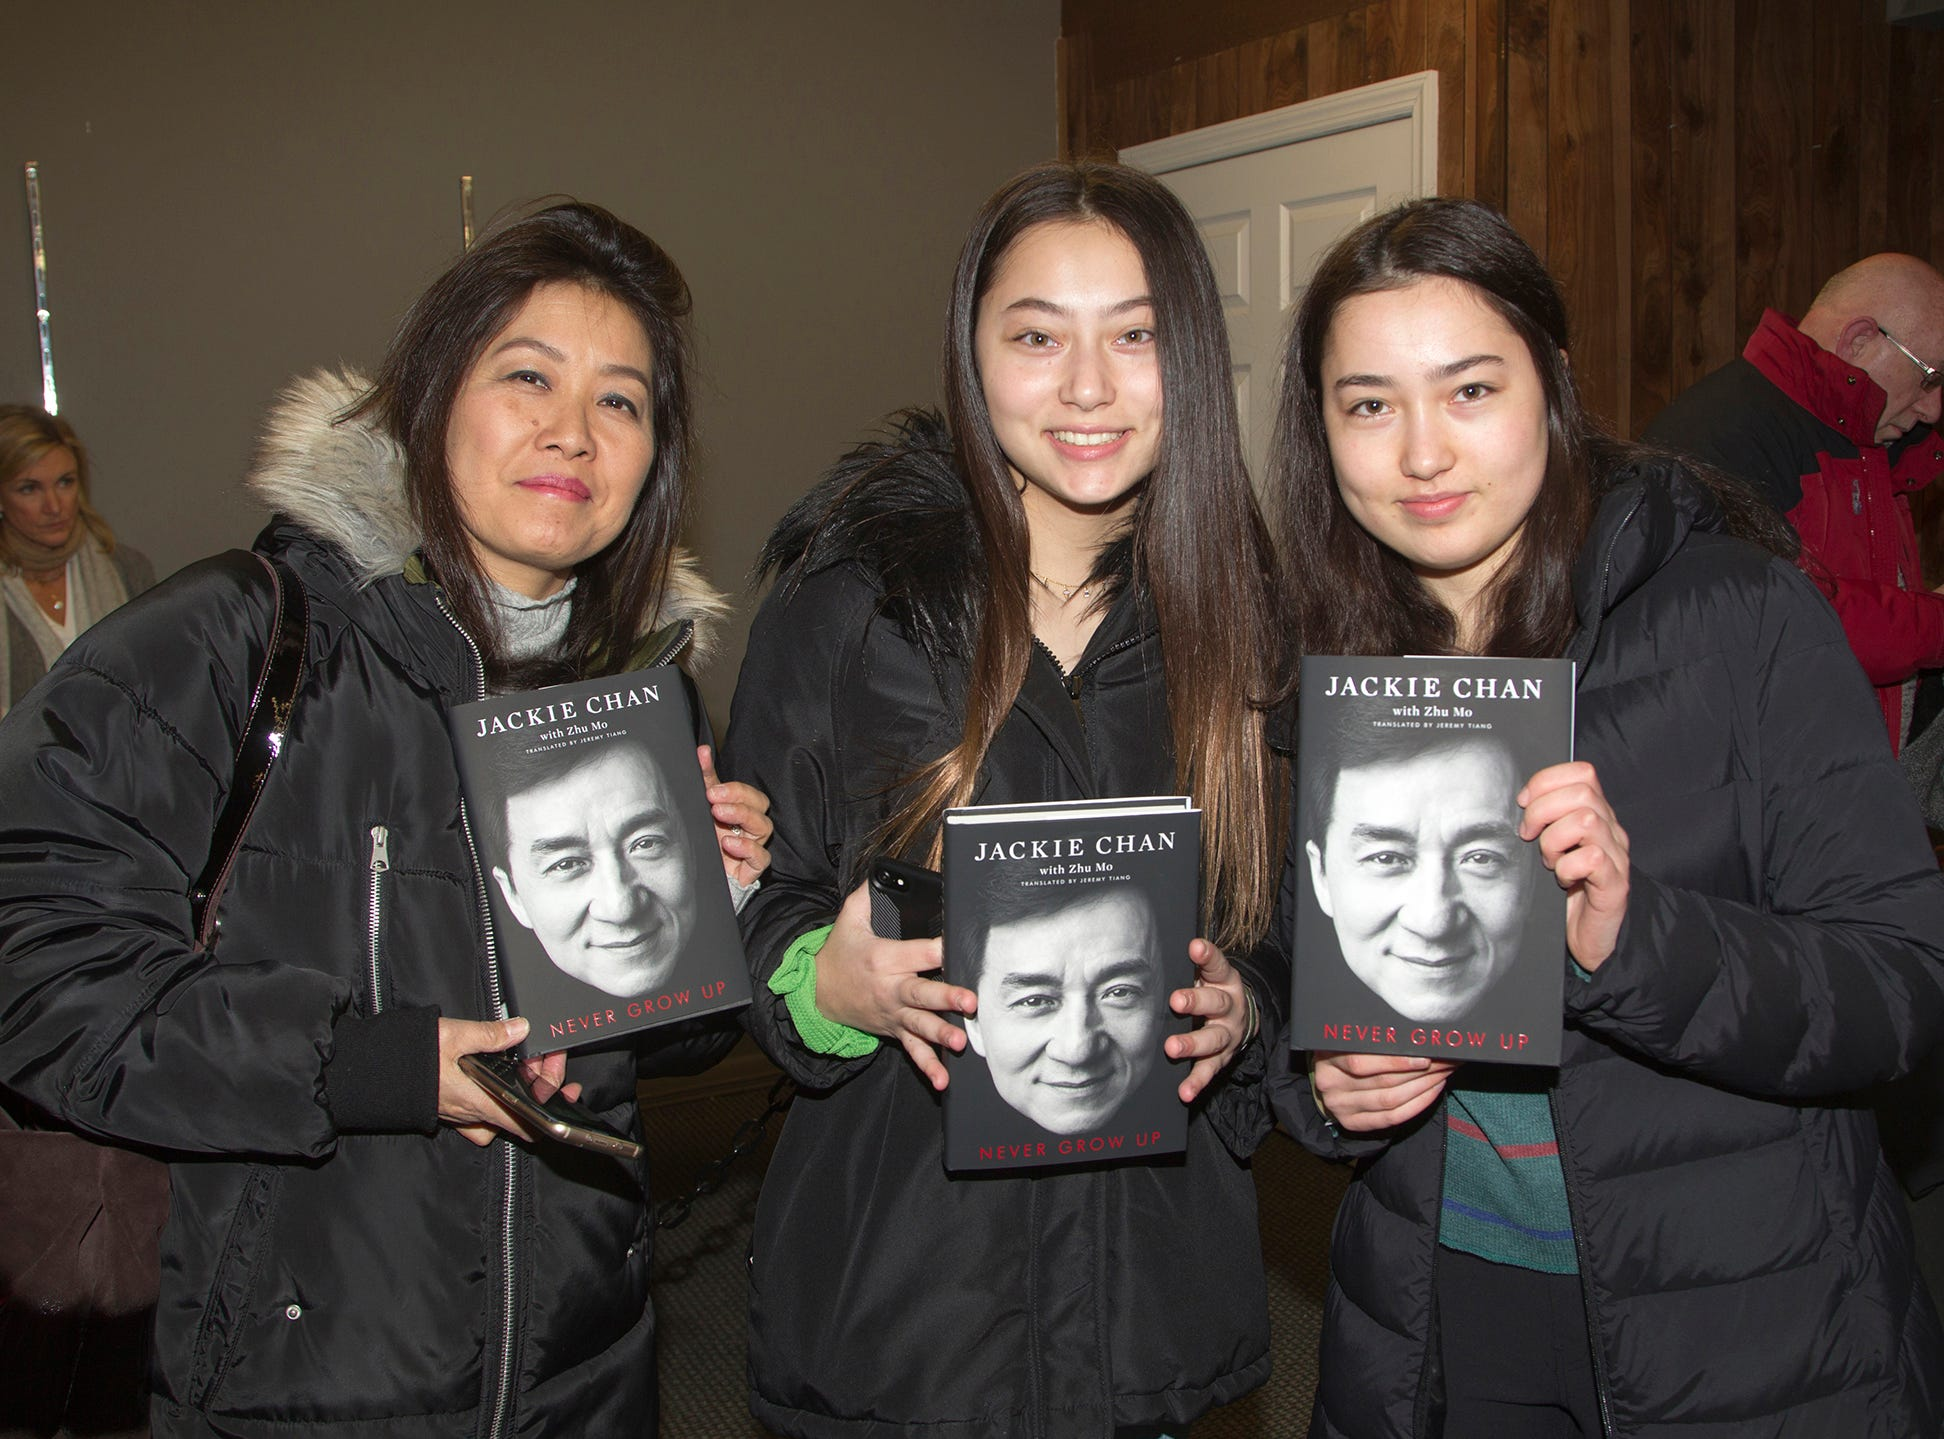 """Lisa, Becky, Karli. Jackie Chan greets fans at Bookends in Ridgewood while signing his new book, """"Never Grow Up."""" 01/21/2019"""